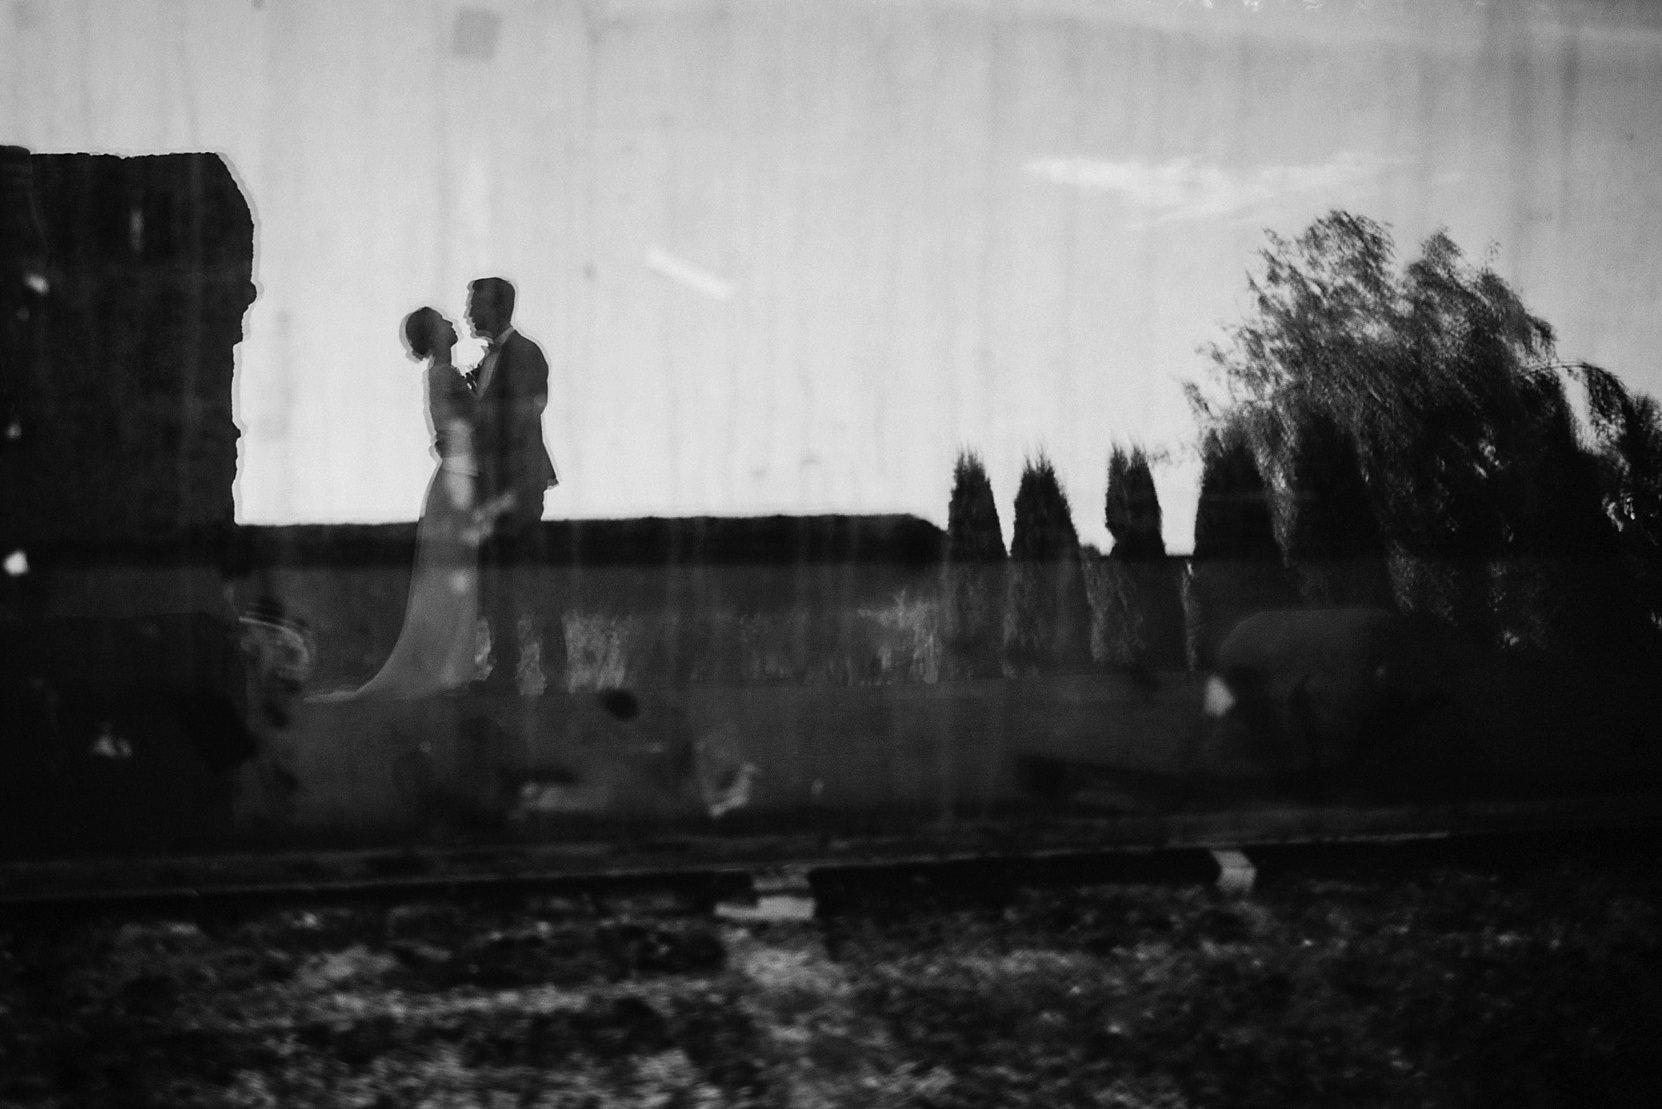 Bride and Groom black and white portrait and reflection